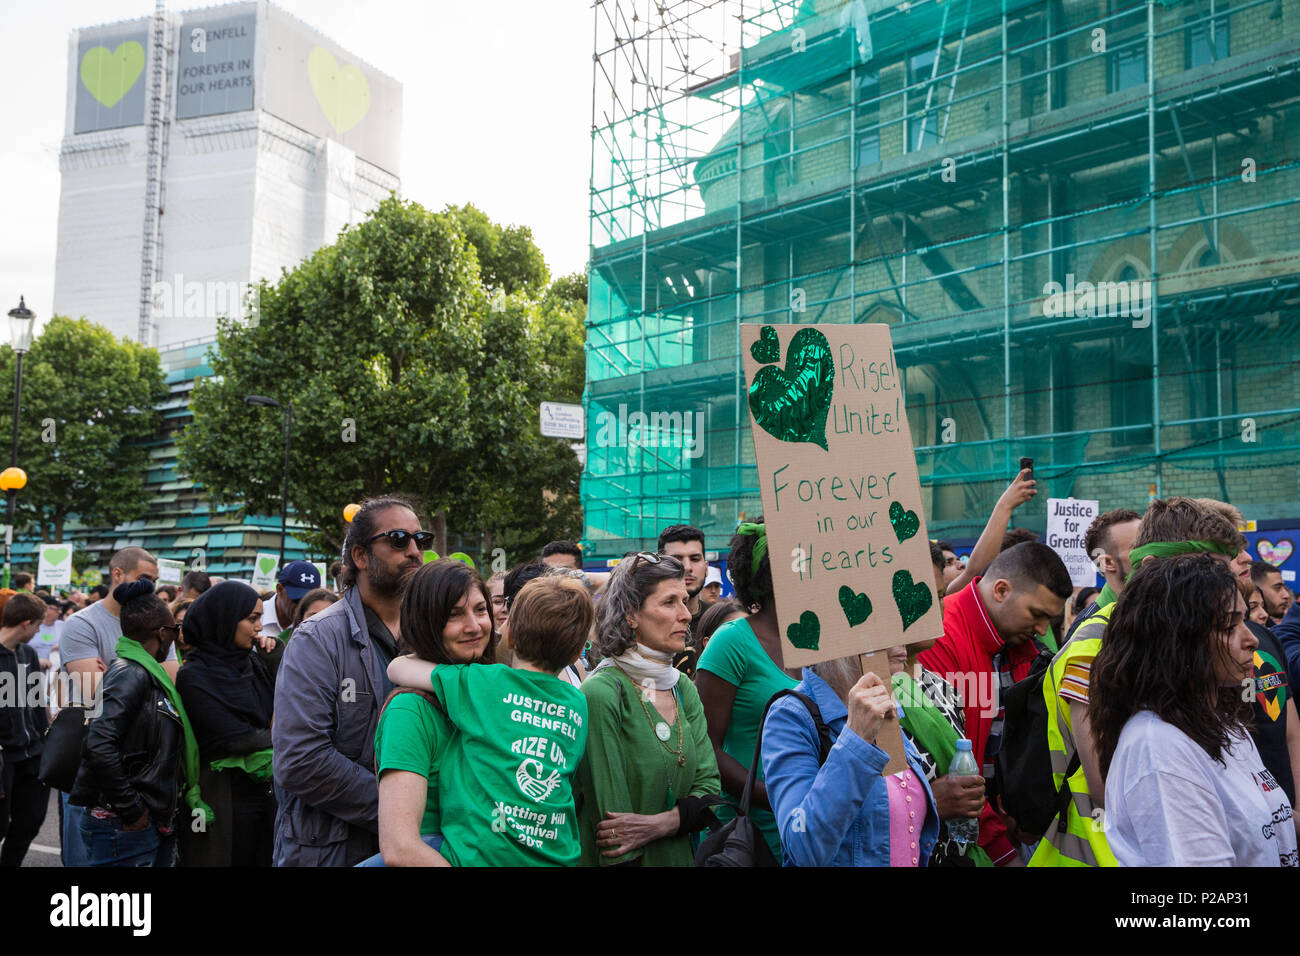 London, UK. 14th June, 2018. Members of the Grenfell community and supporters pass in front of the Grenfell Tower on the Grenfell Silent March through West Kensington on the first anniversary of the Grenfell Tower fire. 72 people died in the Grenfell Tower fire and over 70 were injured. Credit: Mark Kerrison/Alamy Live News - Stock Image